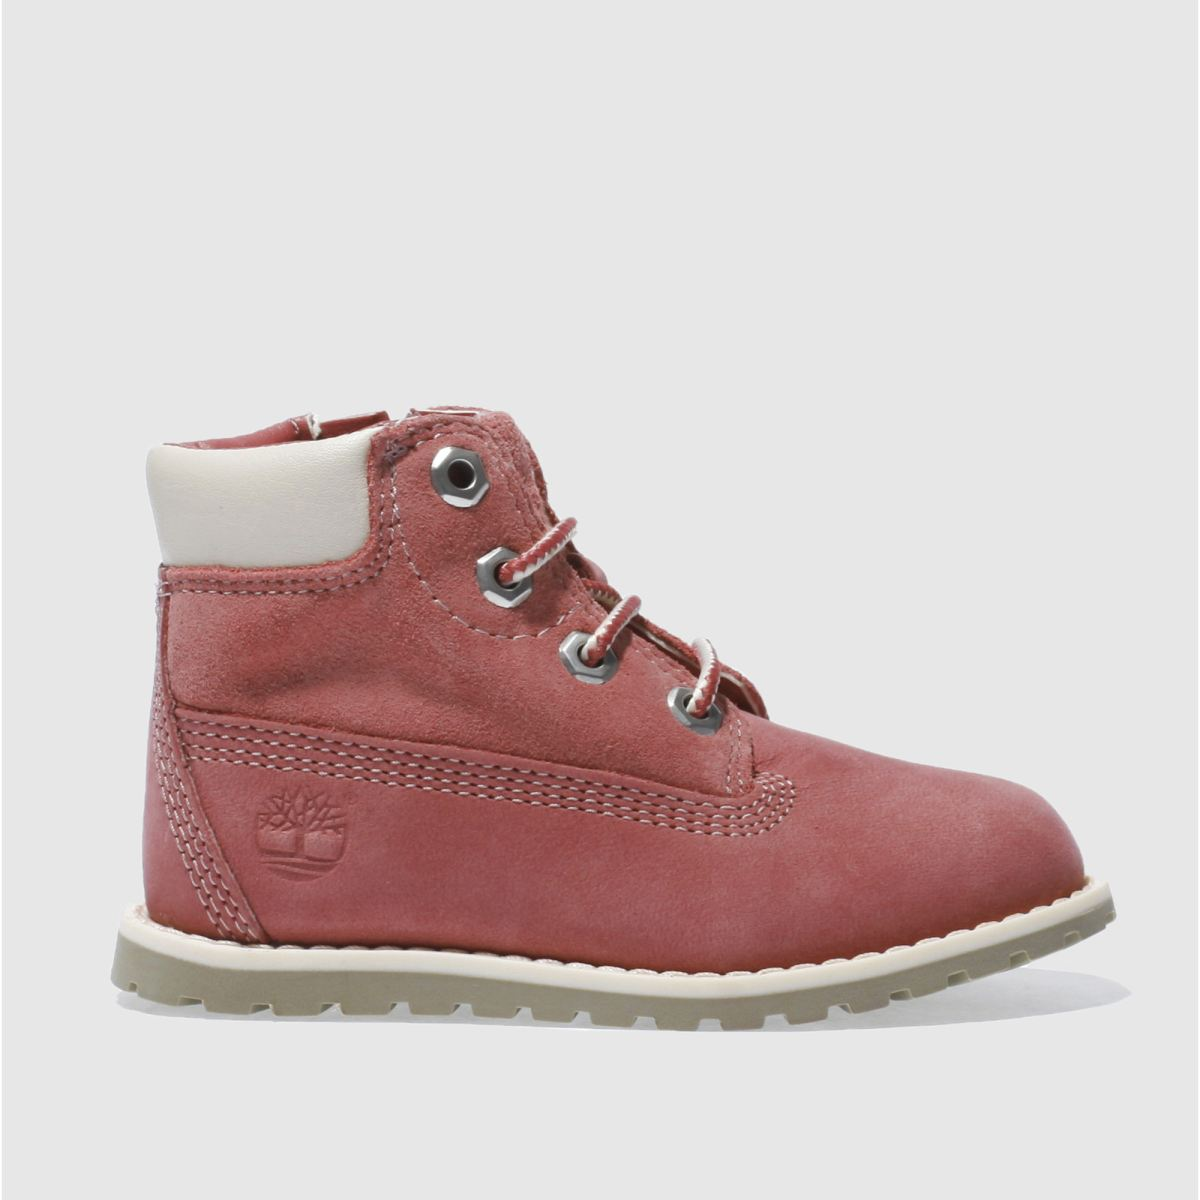 timberland pink pokey pine lace Girls Toddler Boots